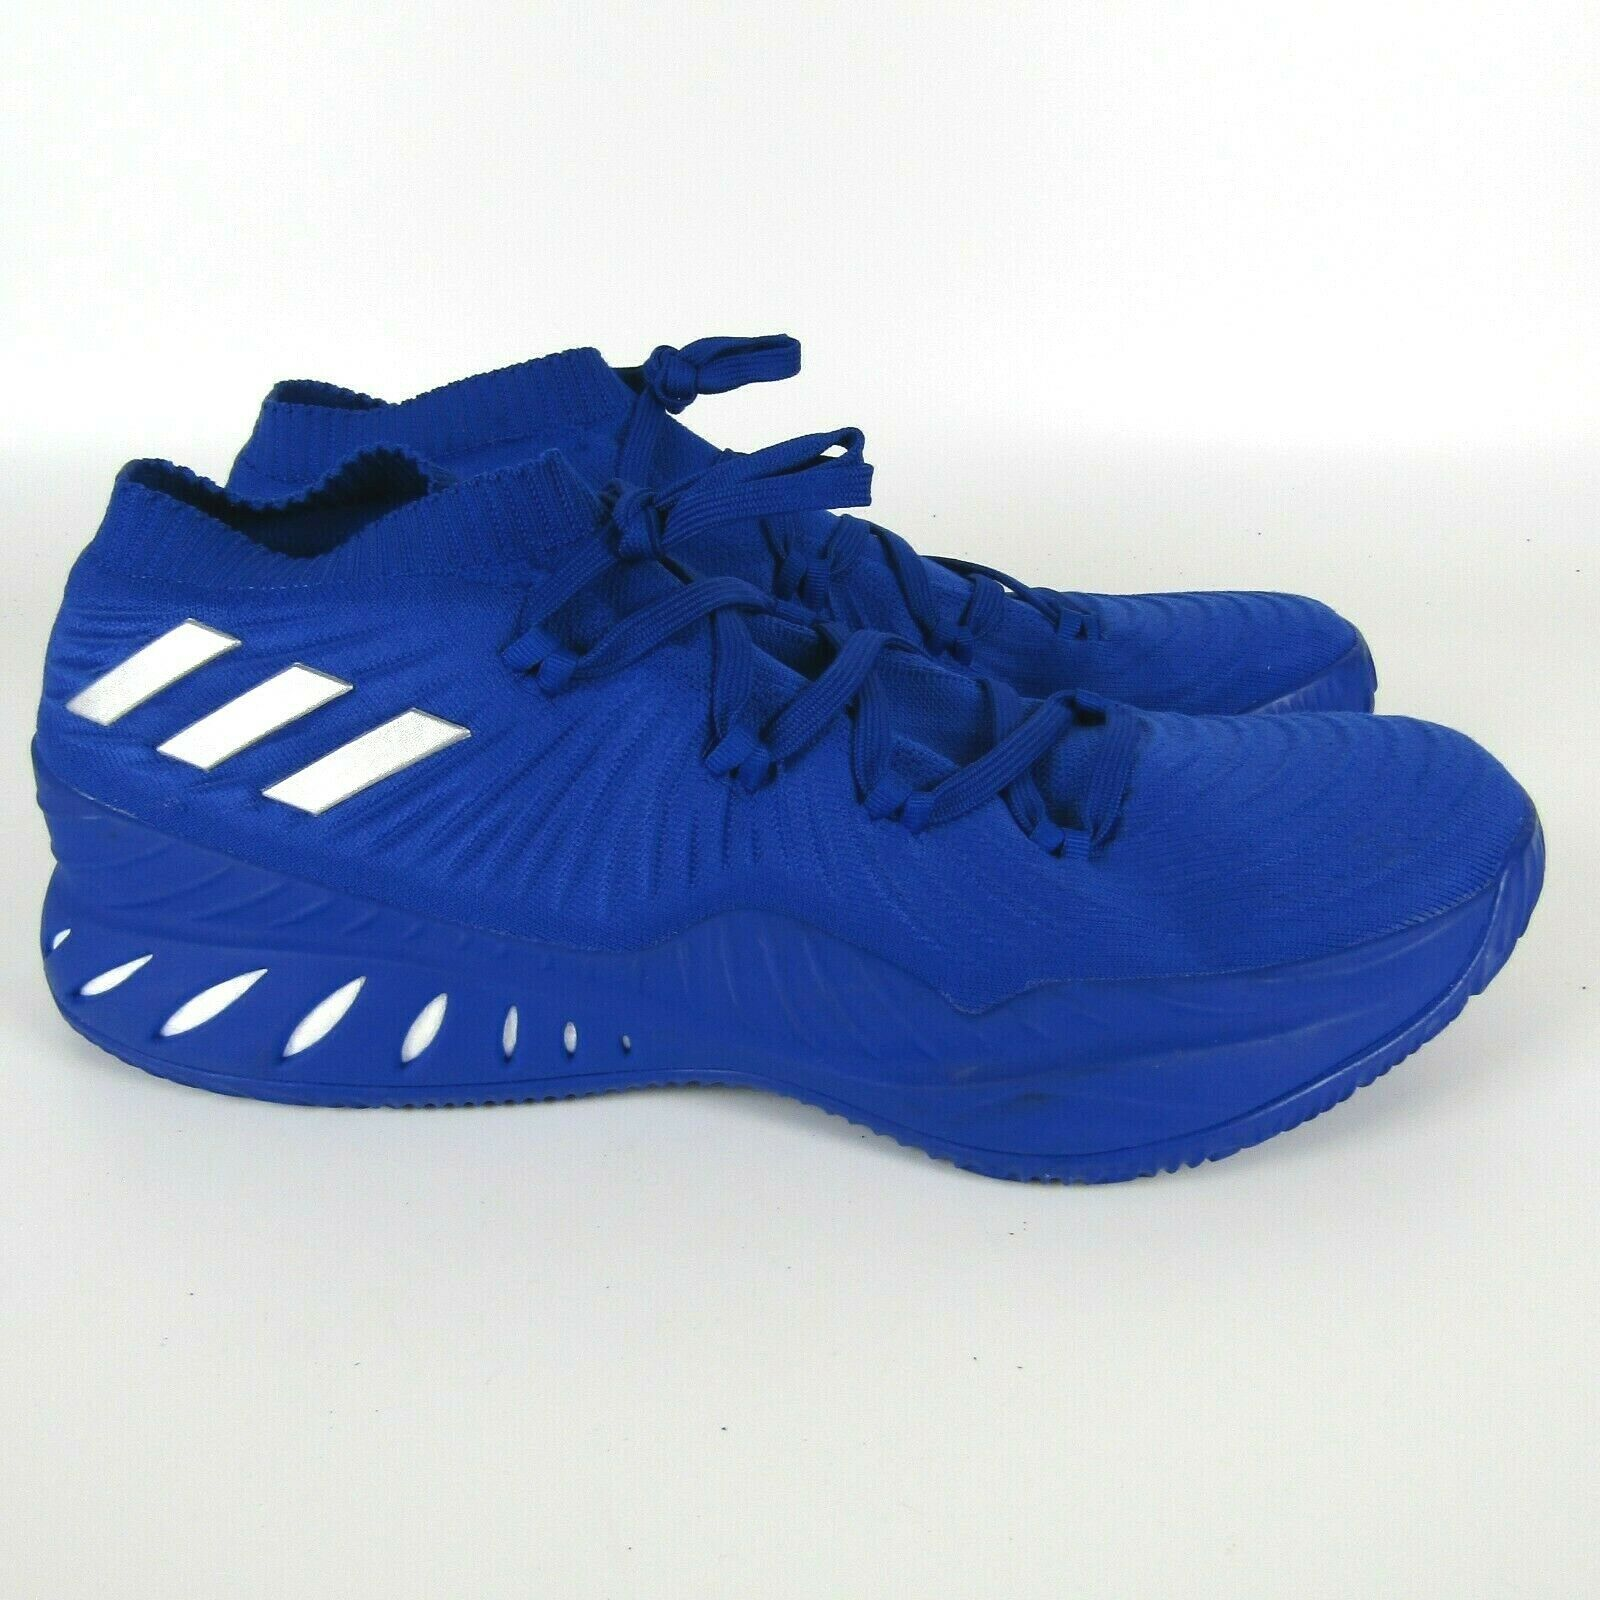 Adidas Crazy Explosive 2017 Low Basketball Shoe Blue White Men's Size 17  B75922